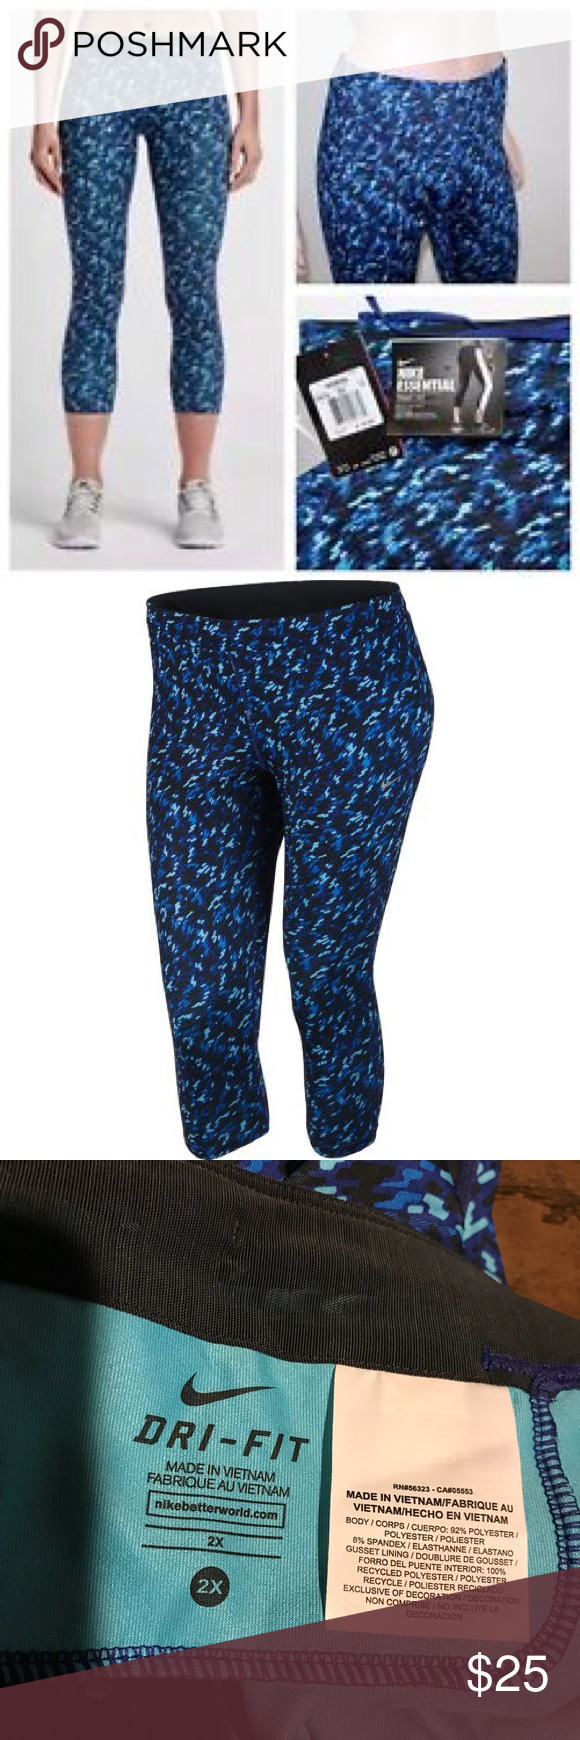 f4054fe75f NWT Nike Women s Dri-Fit Cropped Running Tights Brand new with tags! Nike